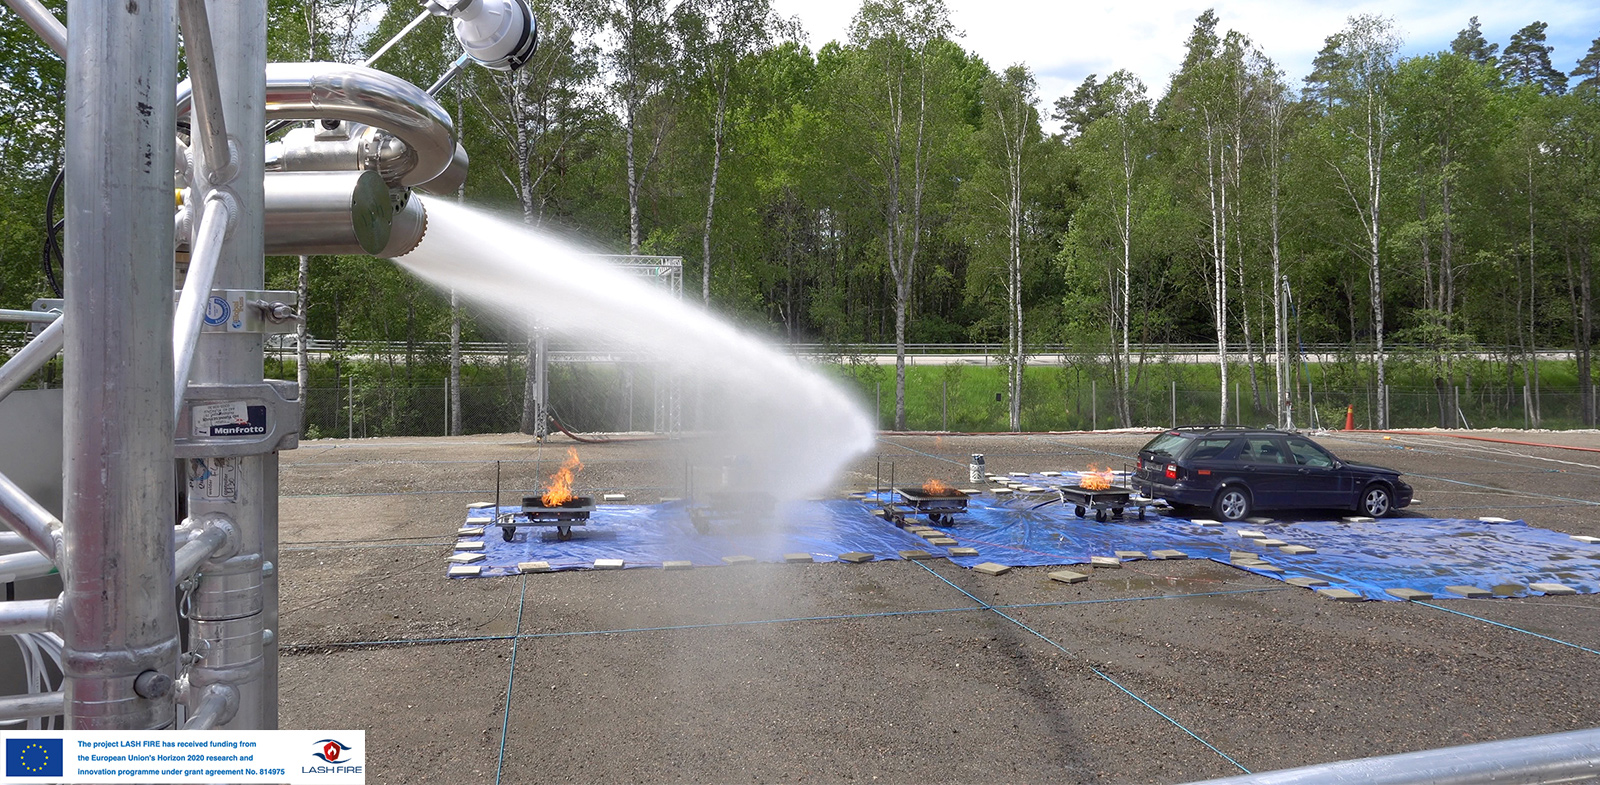 Unifire FlameRanger Autonomous Fire Detection & Suppression System - LASH FIRE Tests